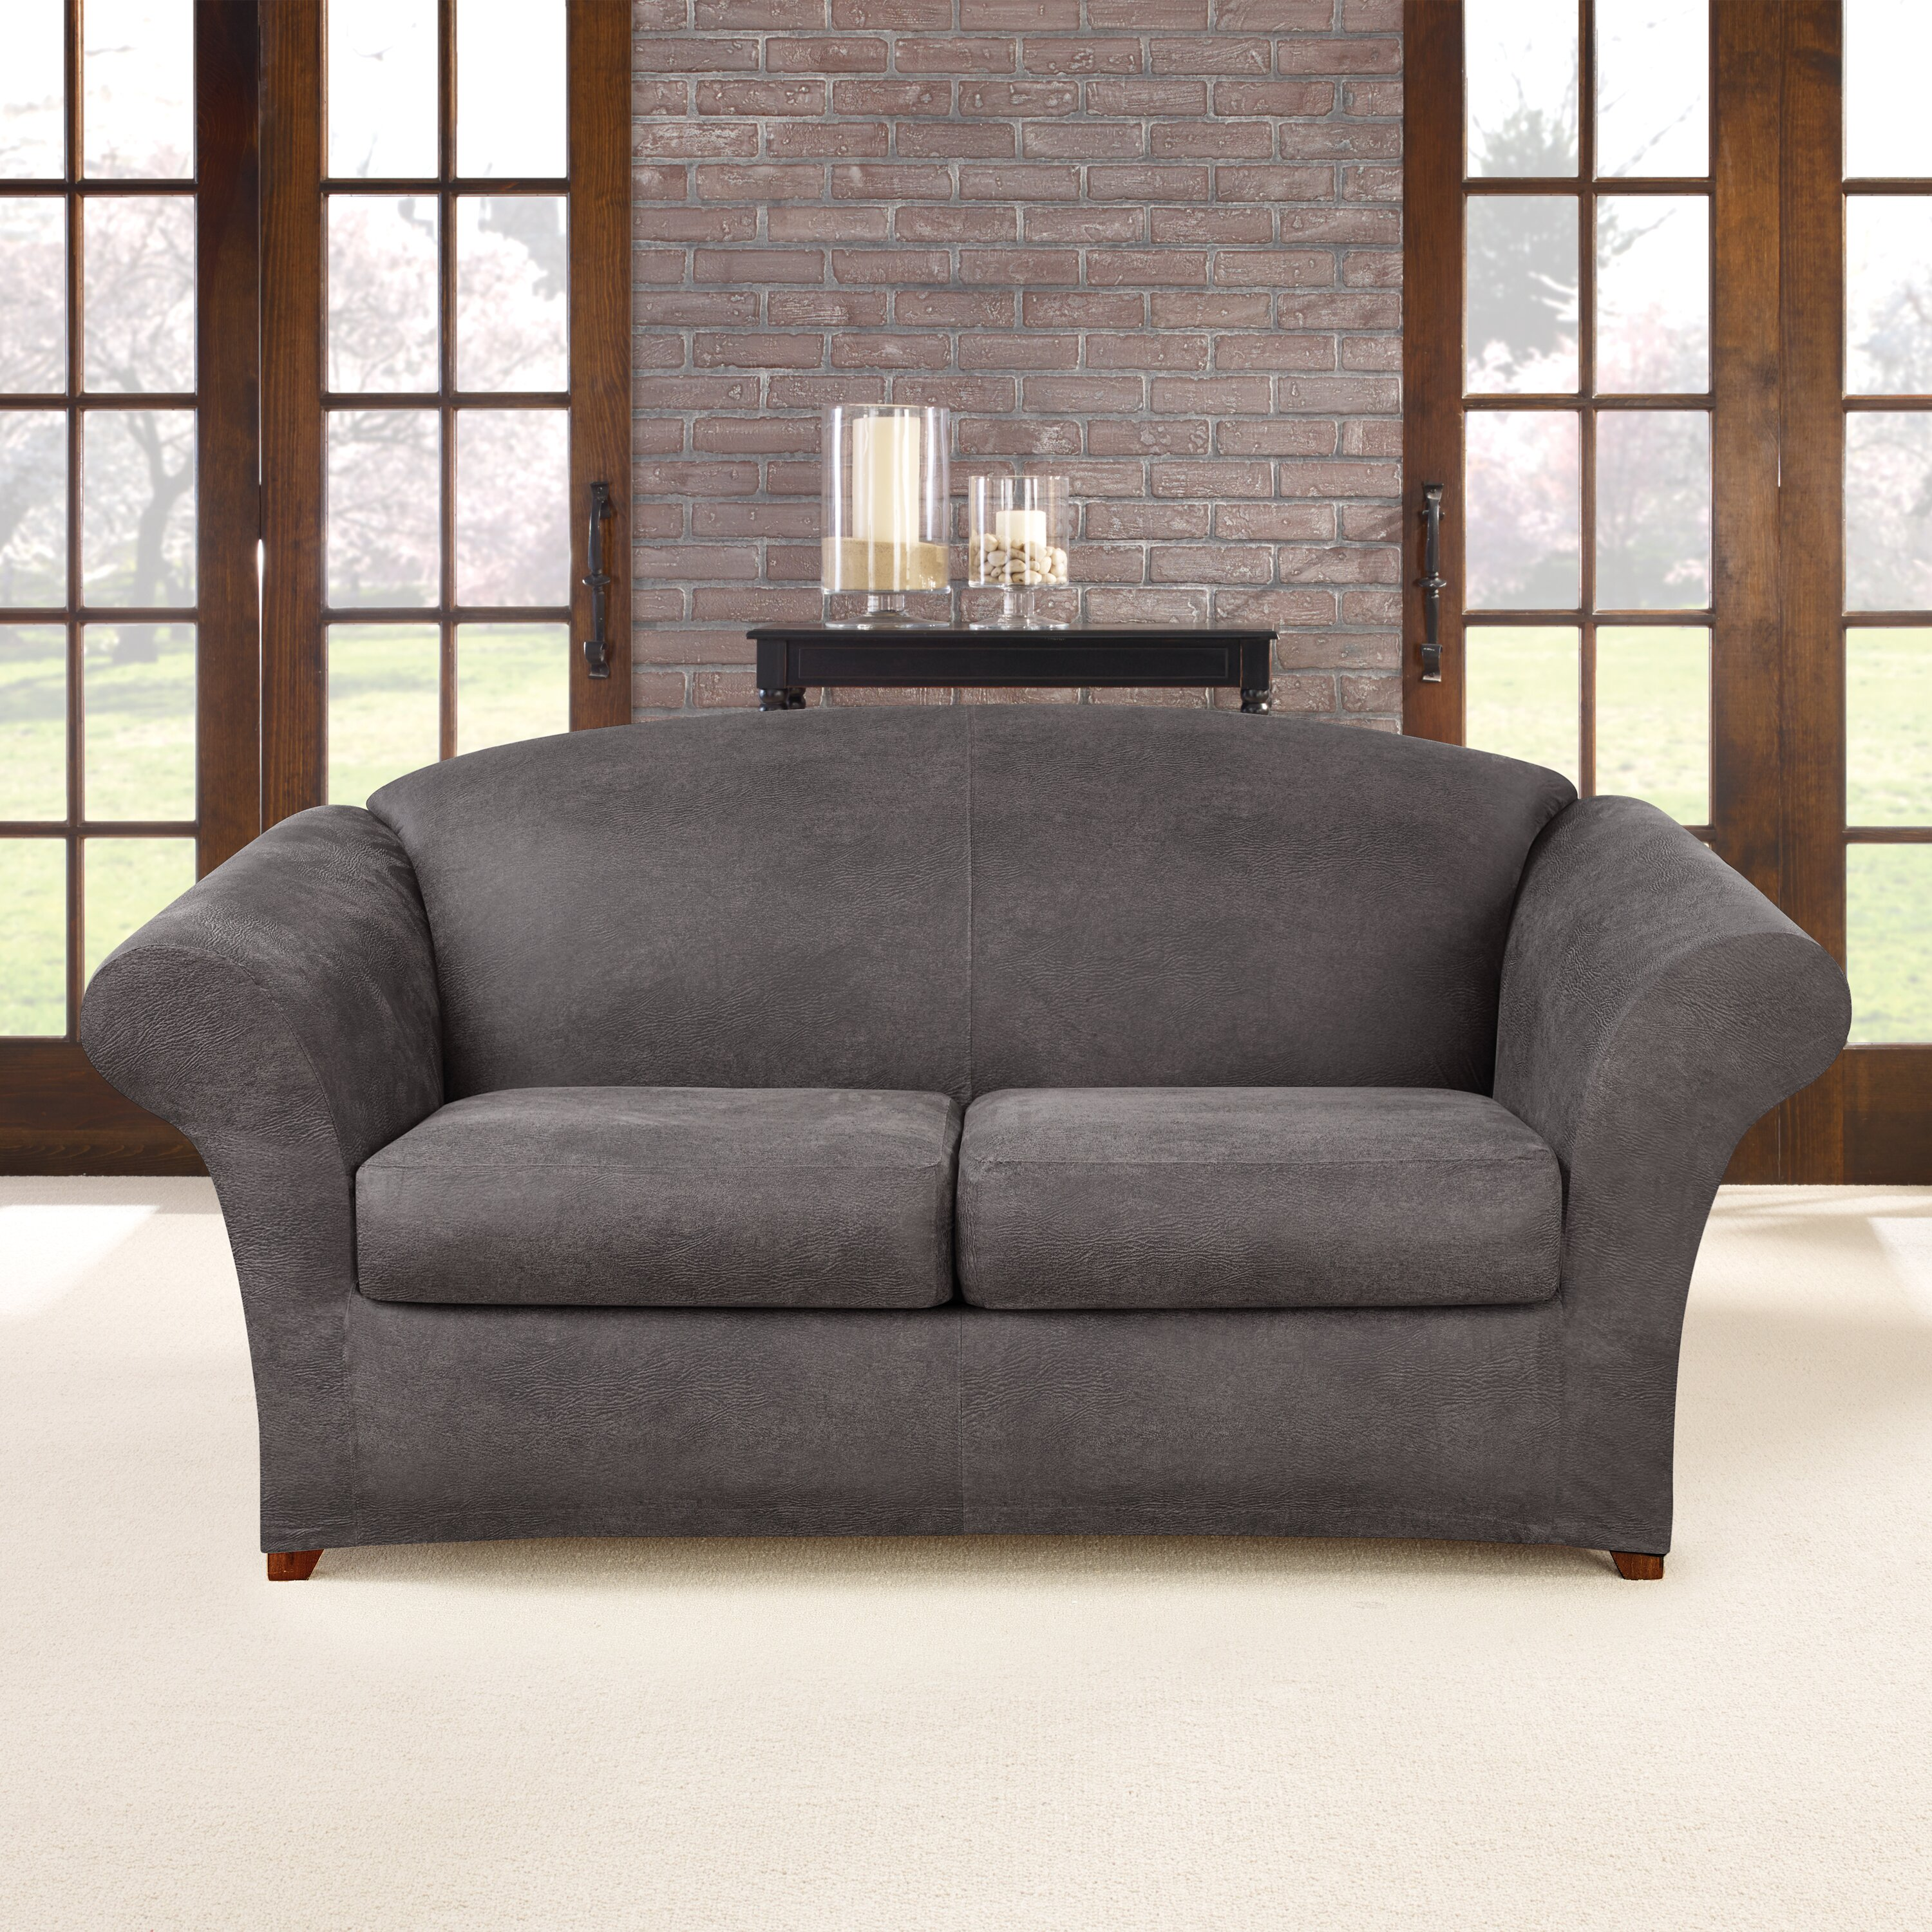 Sofa Slipcover: Sure Fit Ultimate Stretch Faux Leather Sofa Slipcover